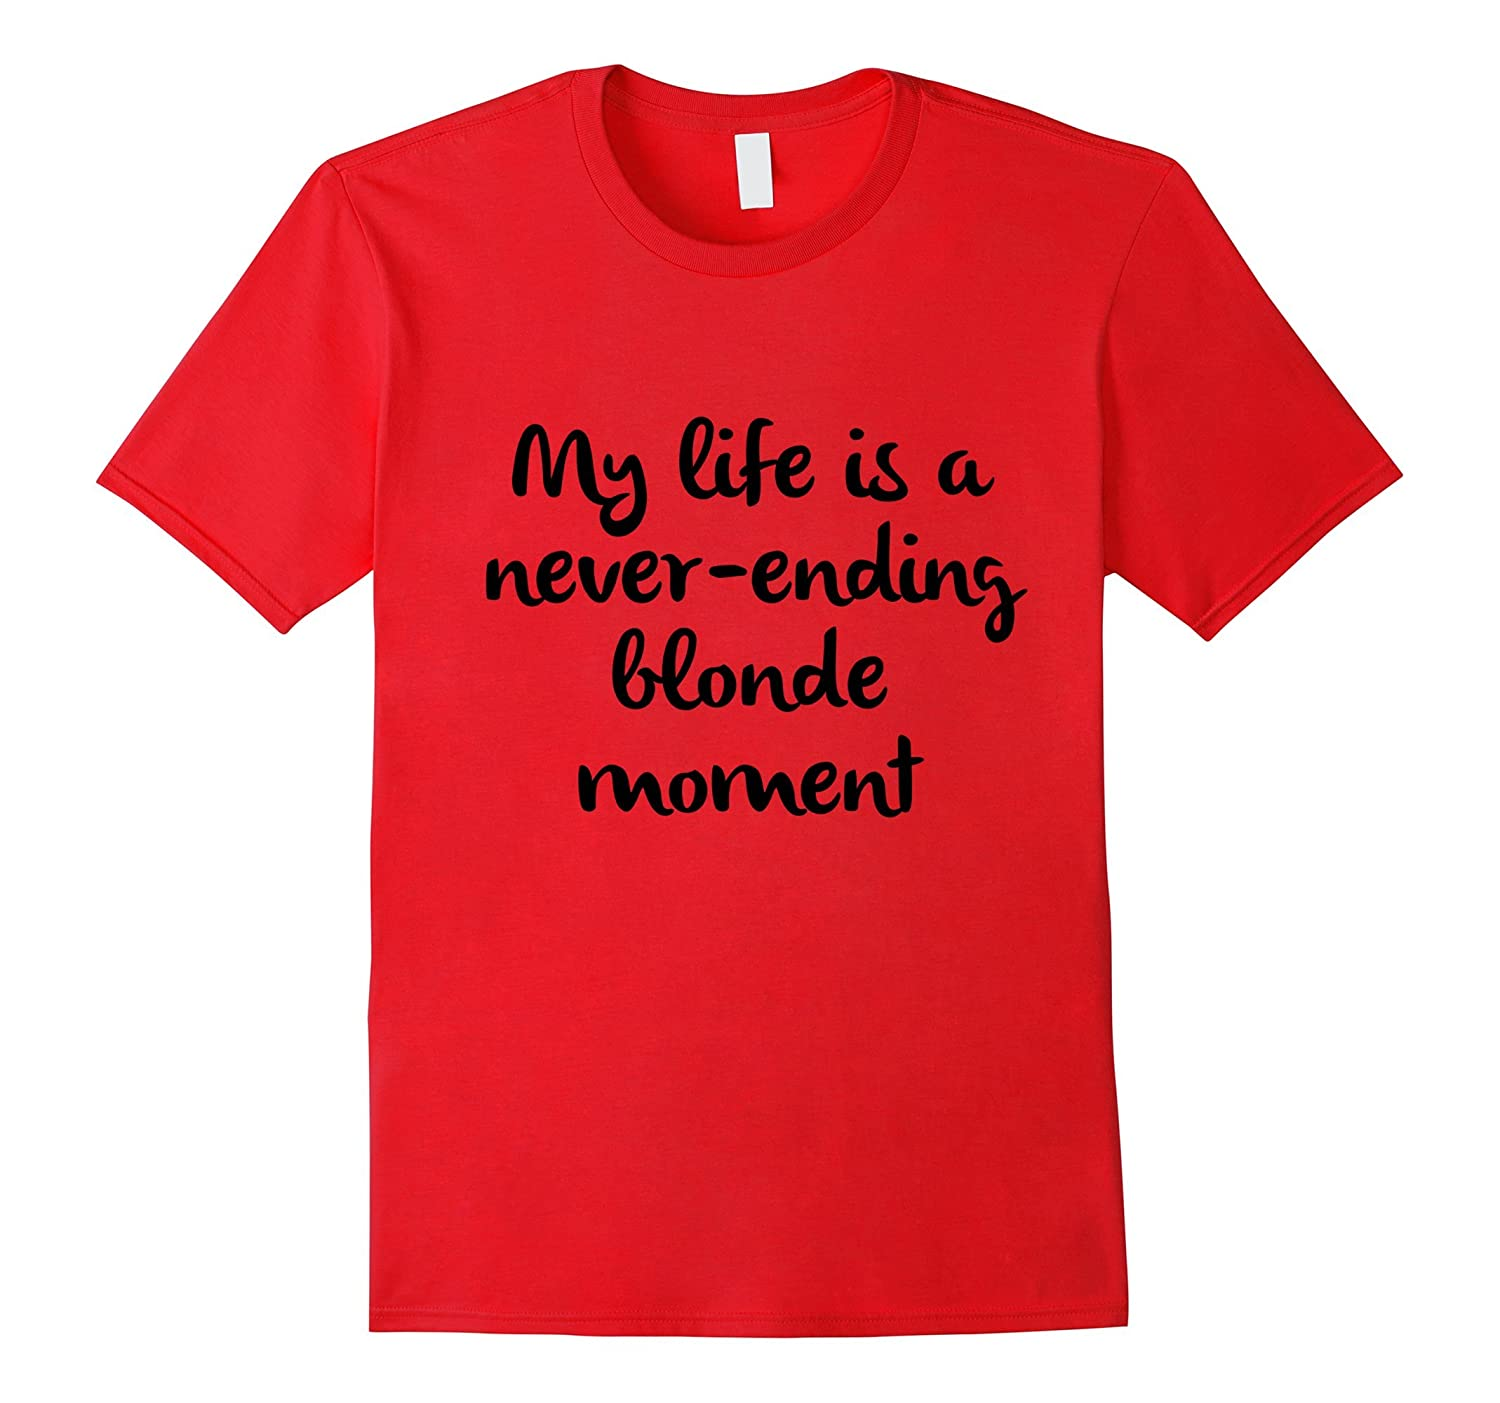 My Life Is A Never-ending Blonde Moment Funny Sarcasm Shirt-Vaci